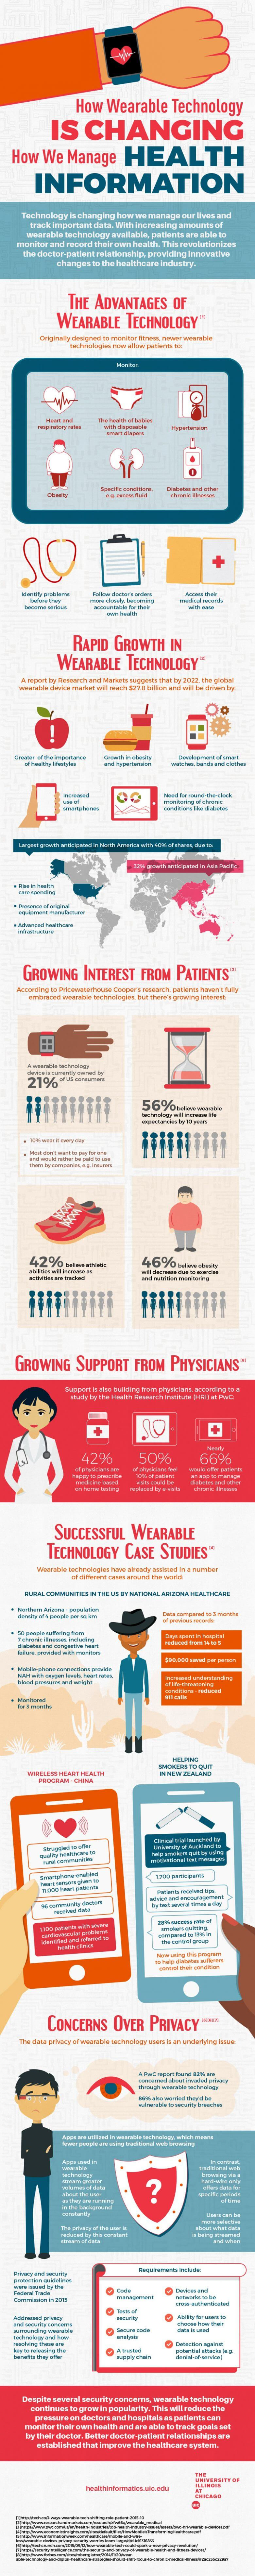 Infograph on How Wearable Tech is Changing How We Manage Health Information